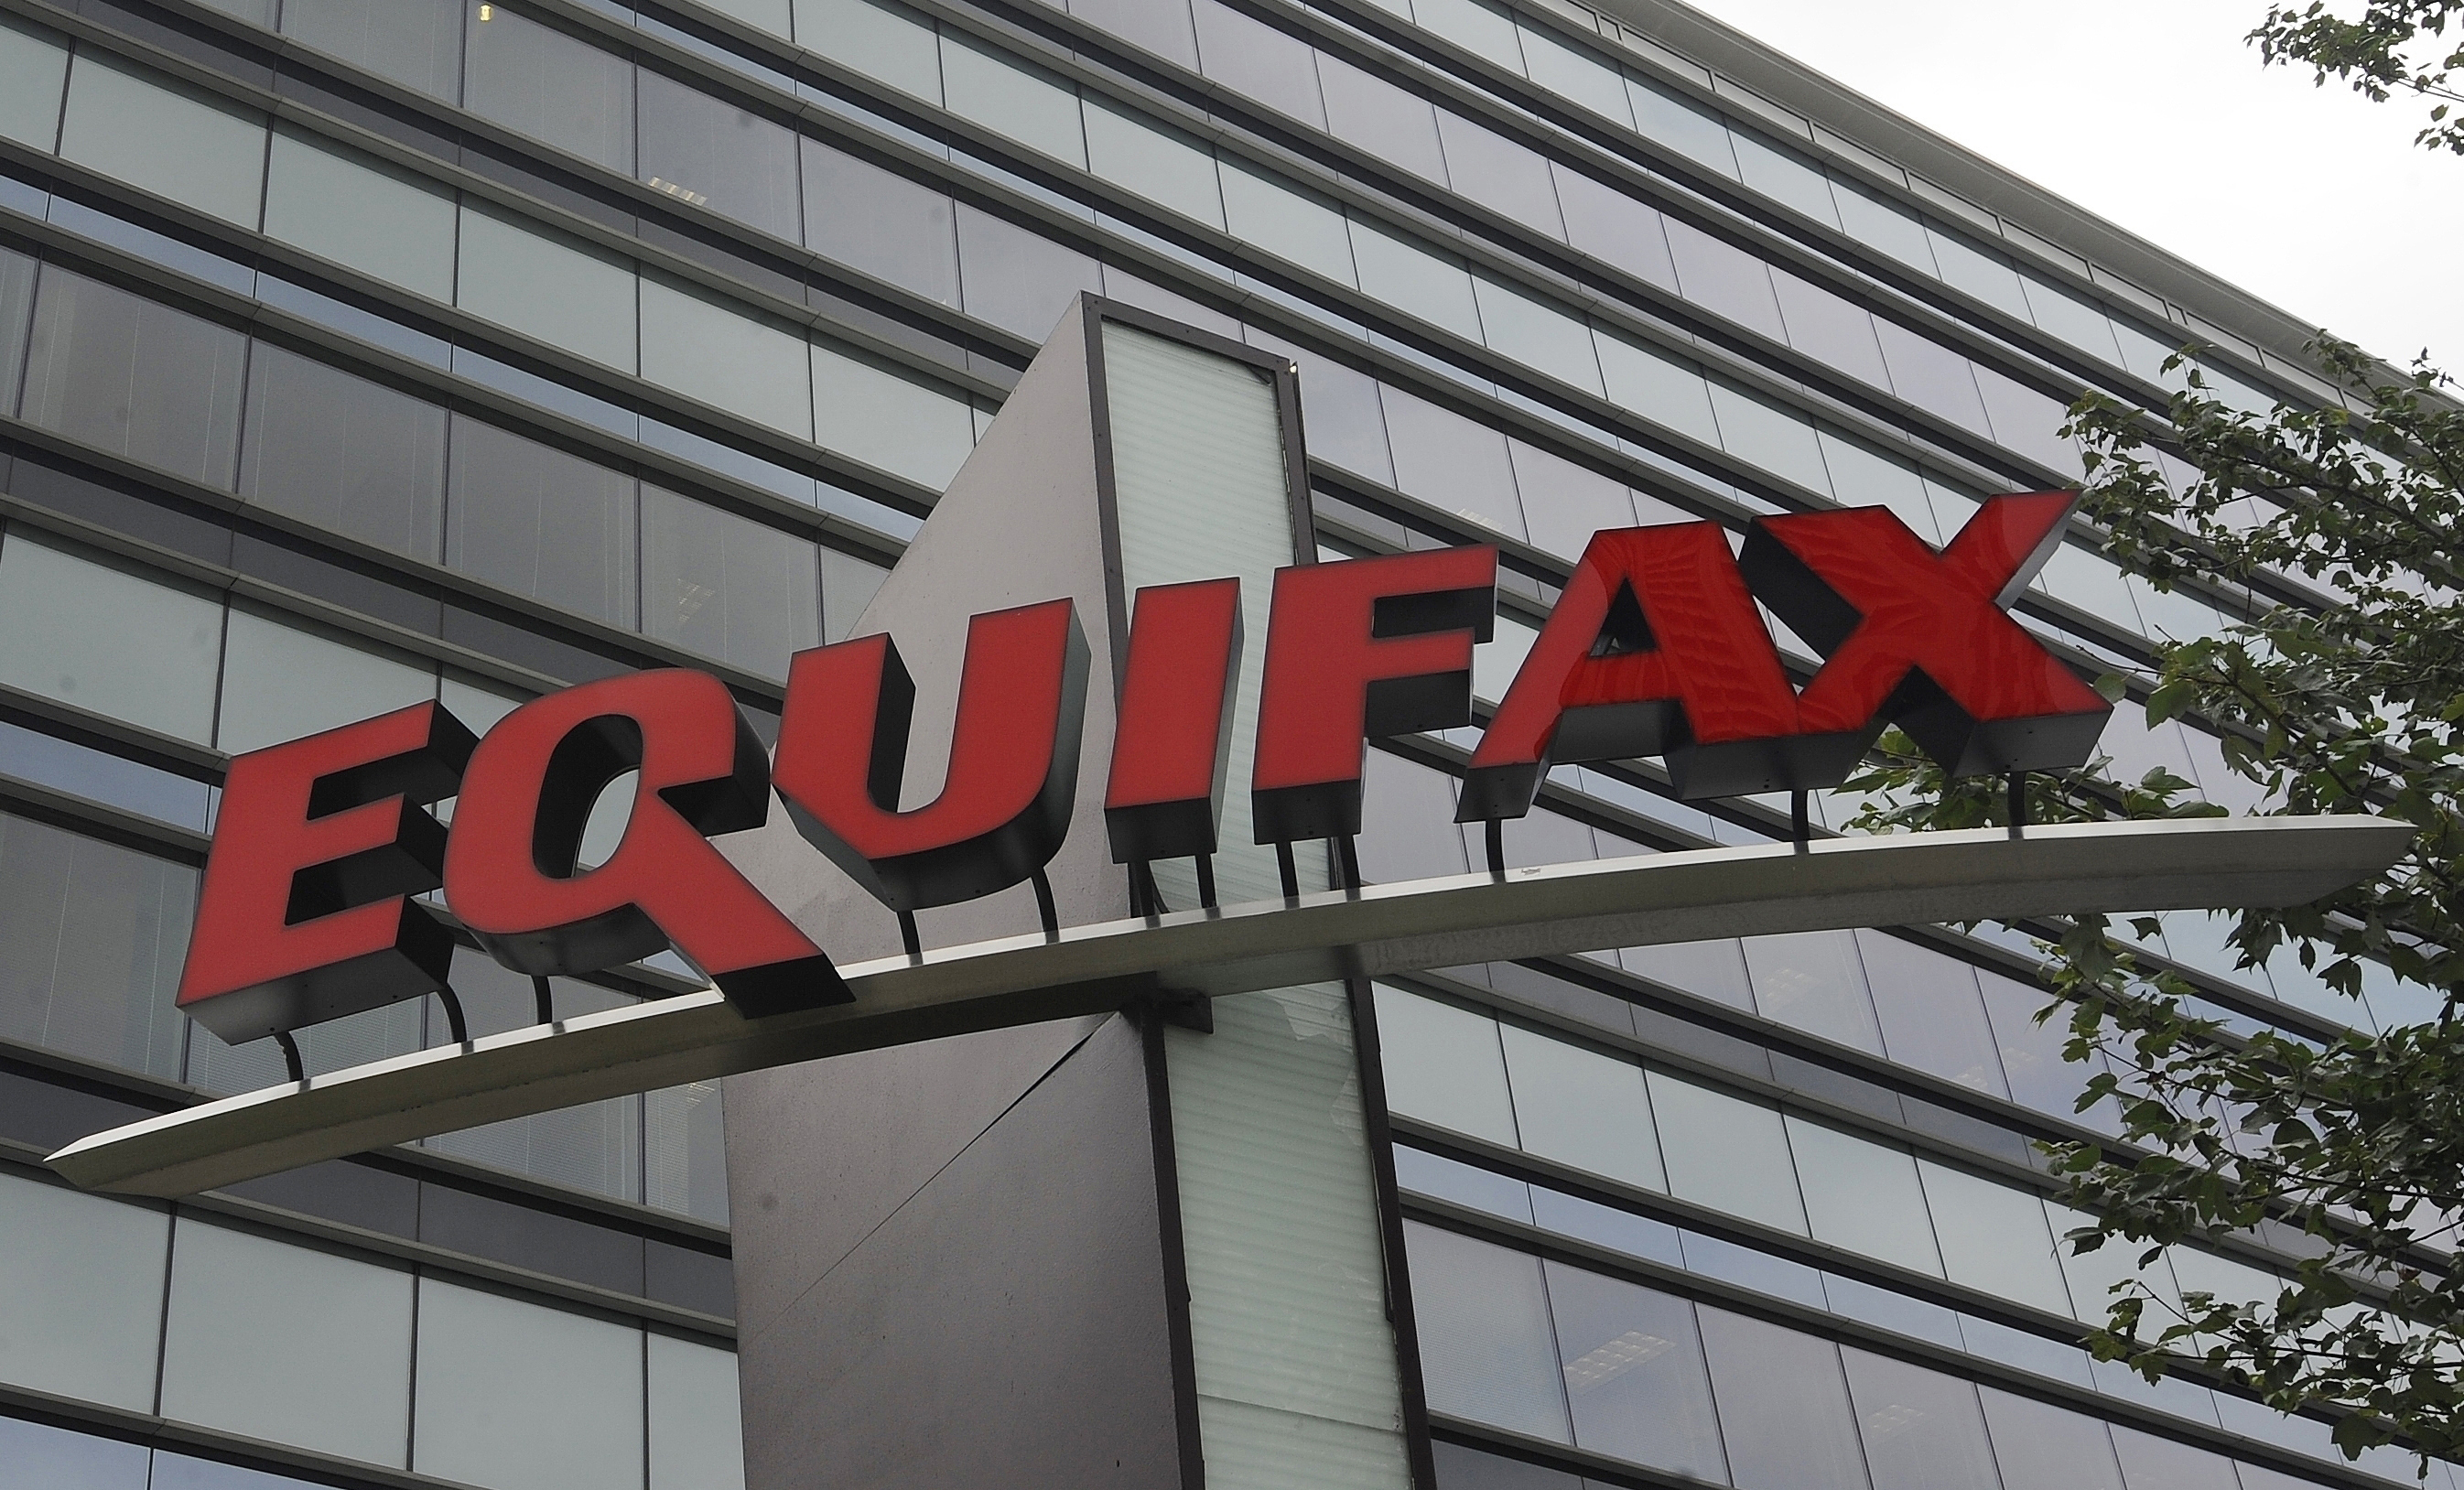 The headquarters of Equifax in Atlanta